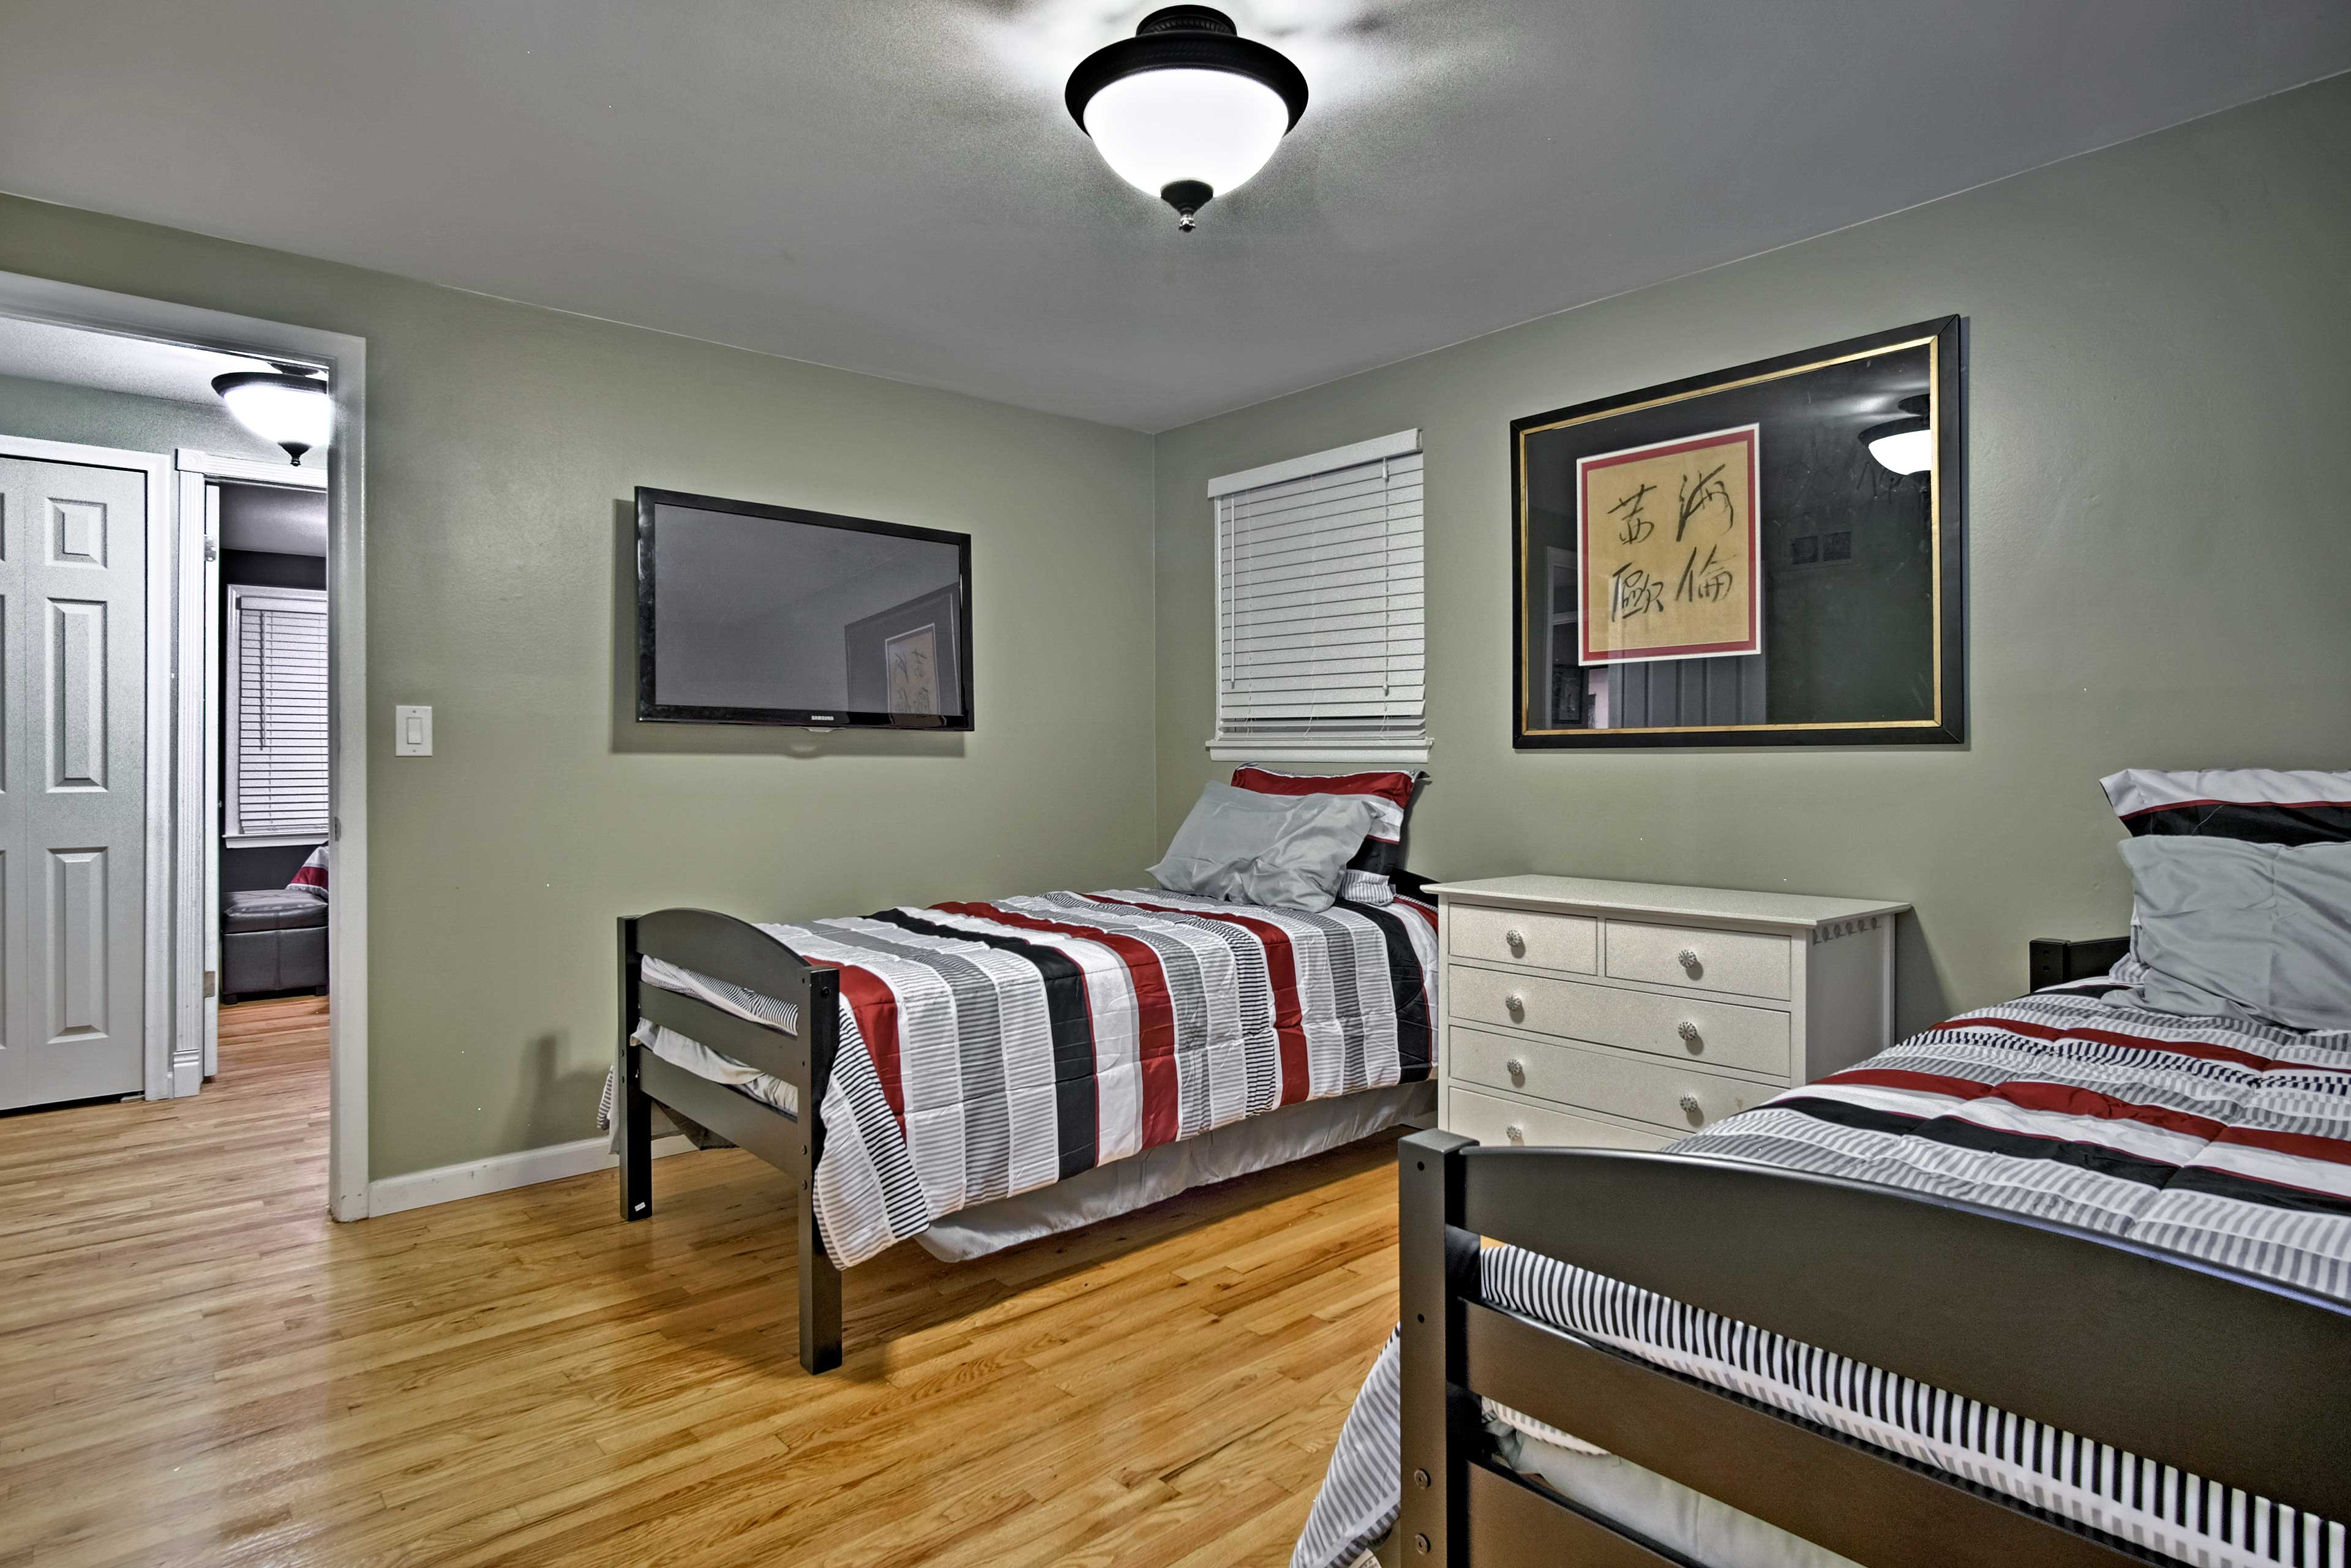 The kids and siblings will love sharing this last bedroom.